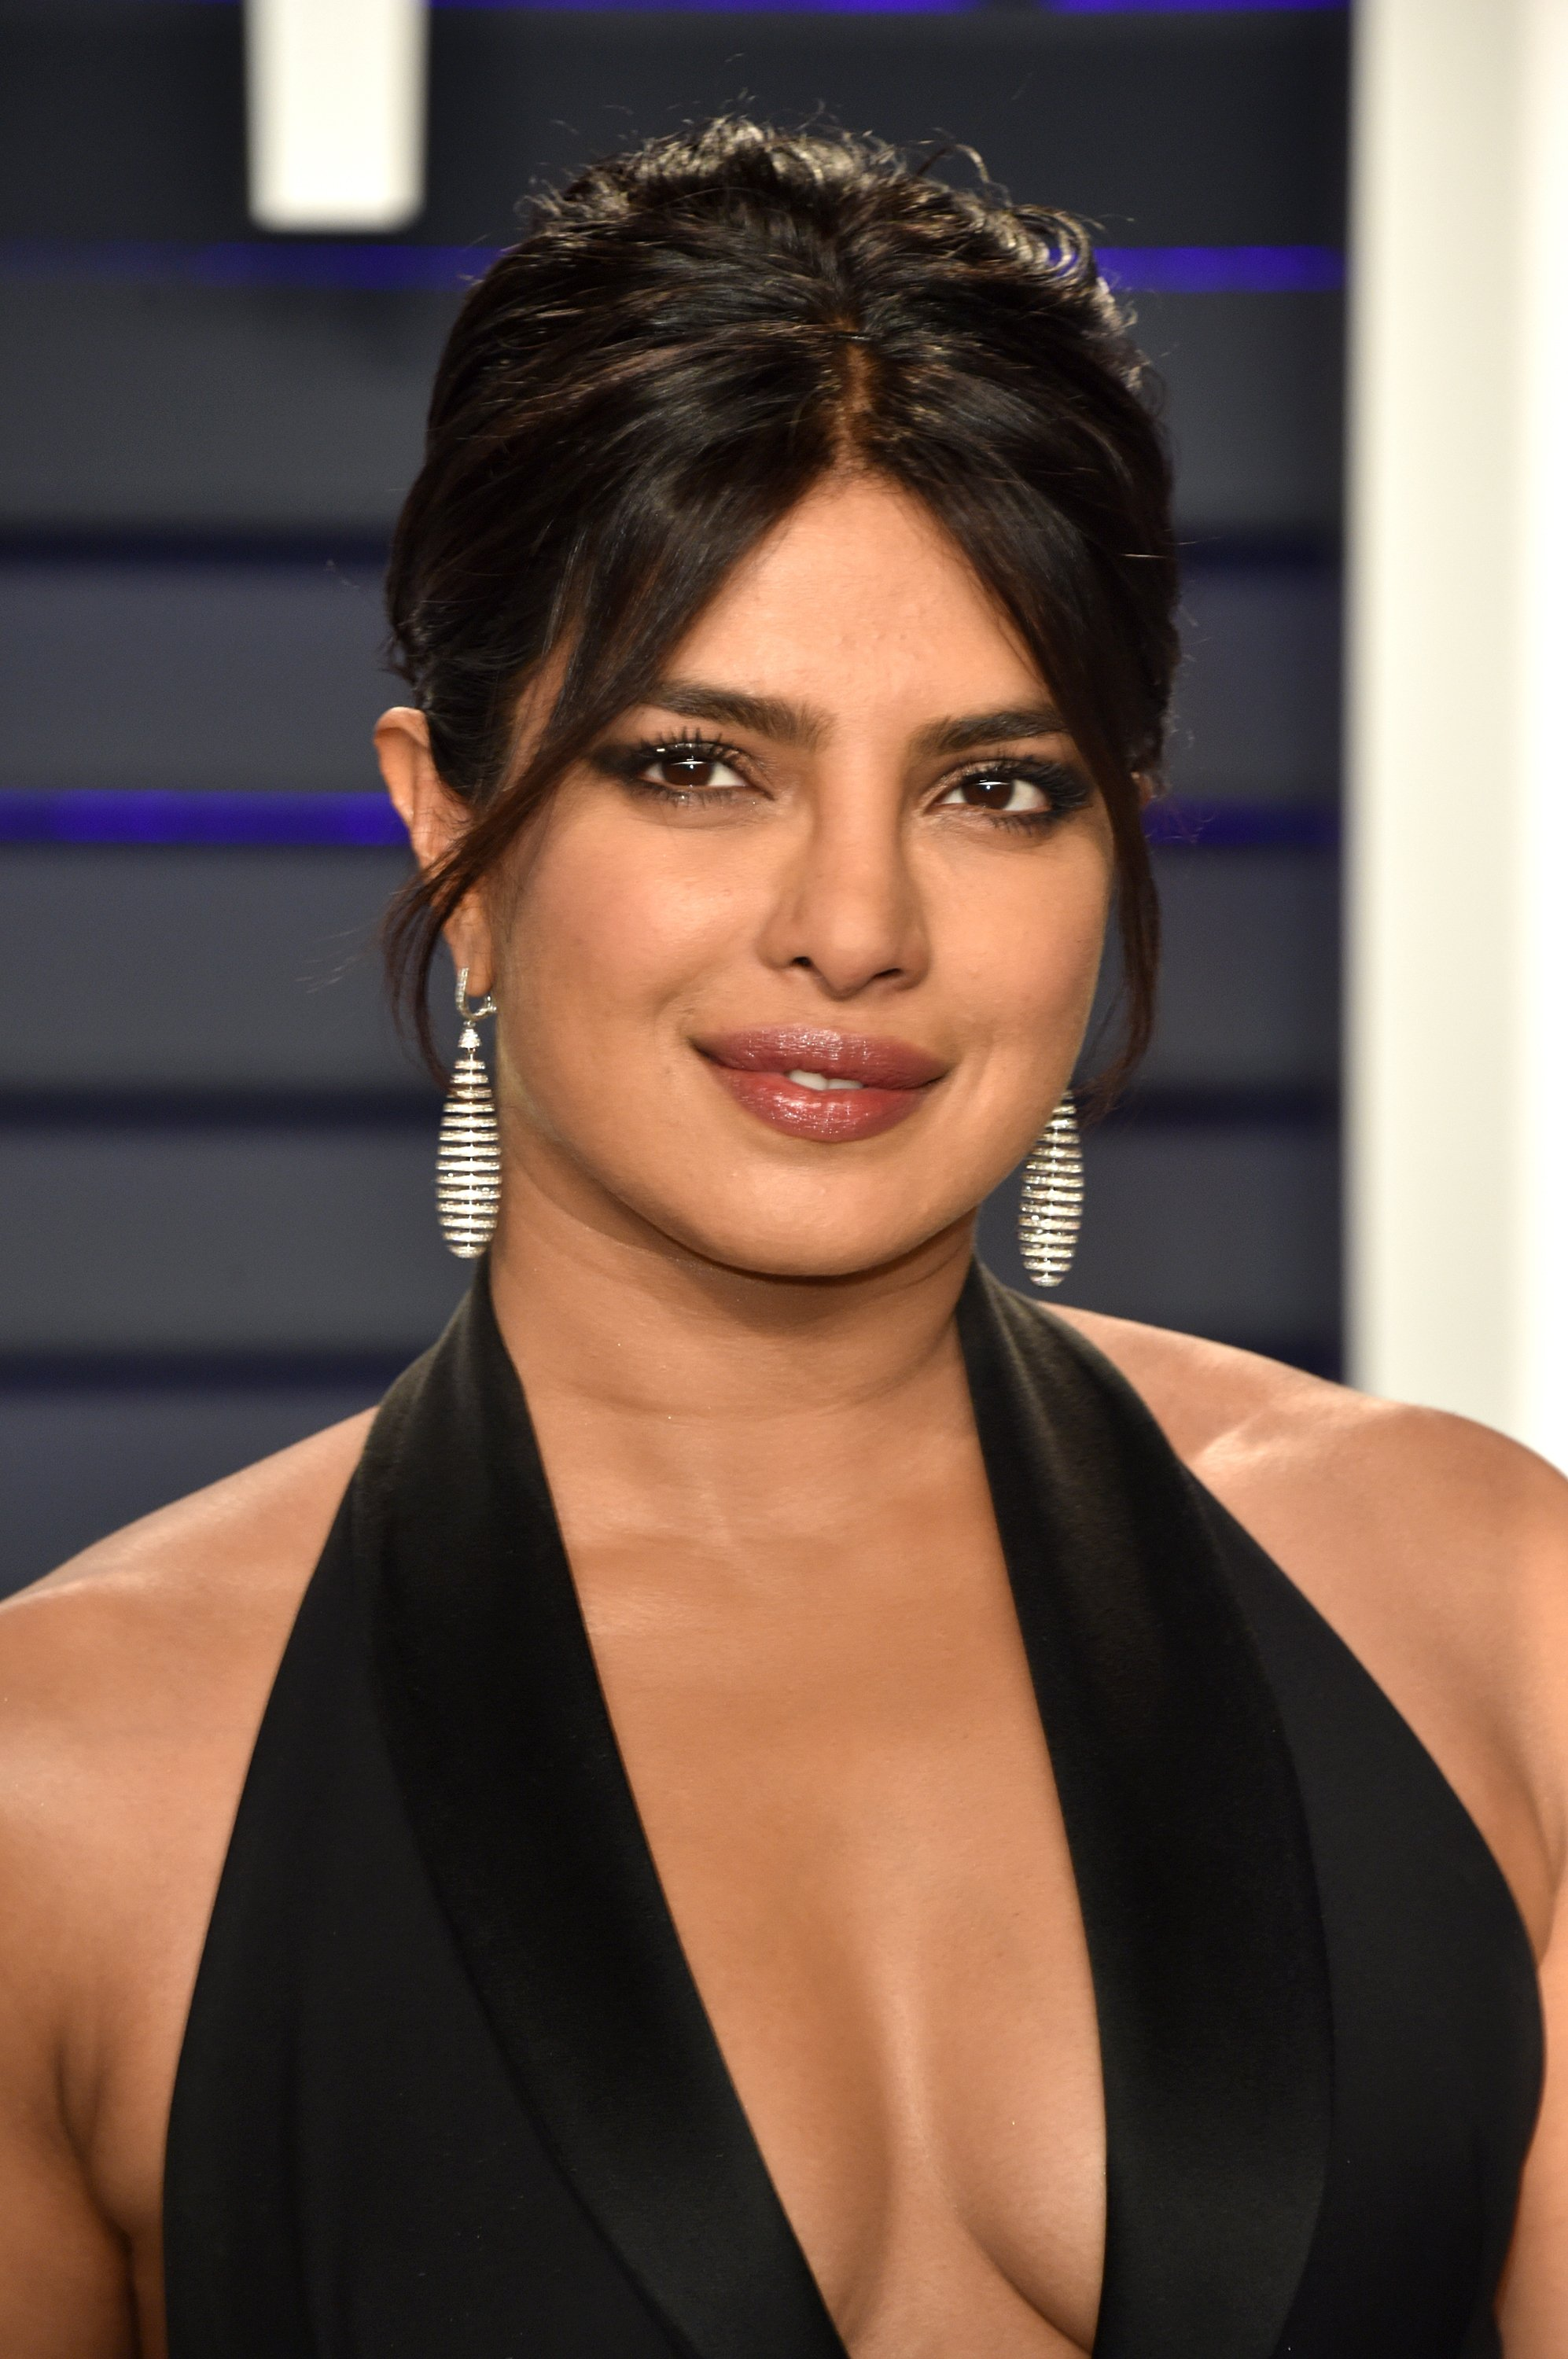 Priyanka Chopra attends the Vanity Fair Oscar Party in Beverly Hills, California on February 24, 2019 | Photo: Getty Images